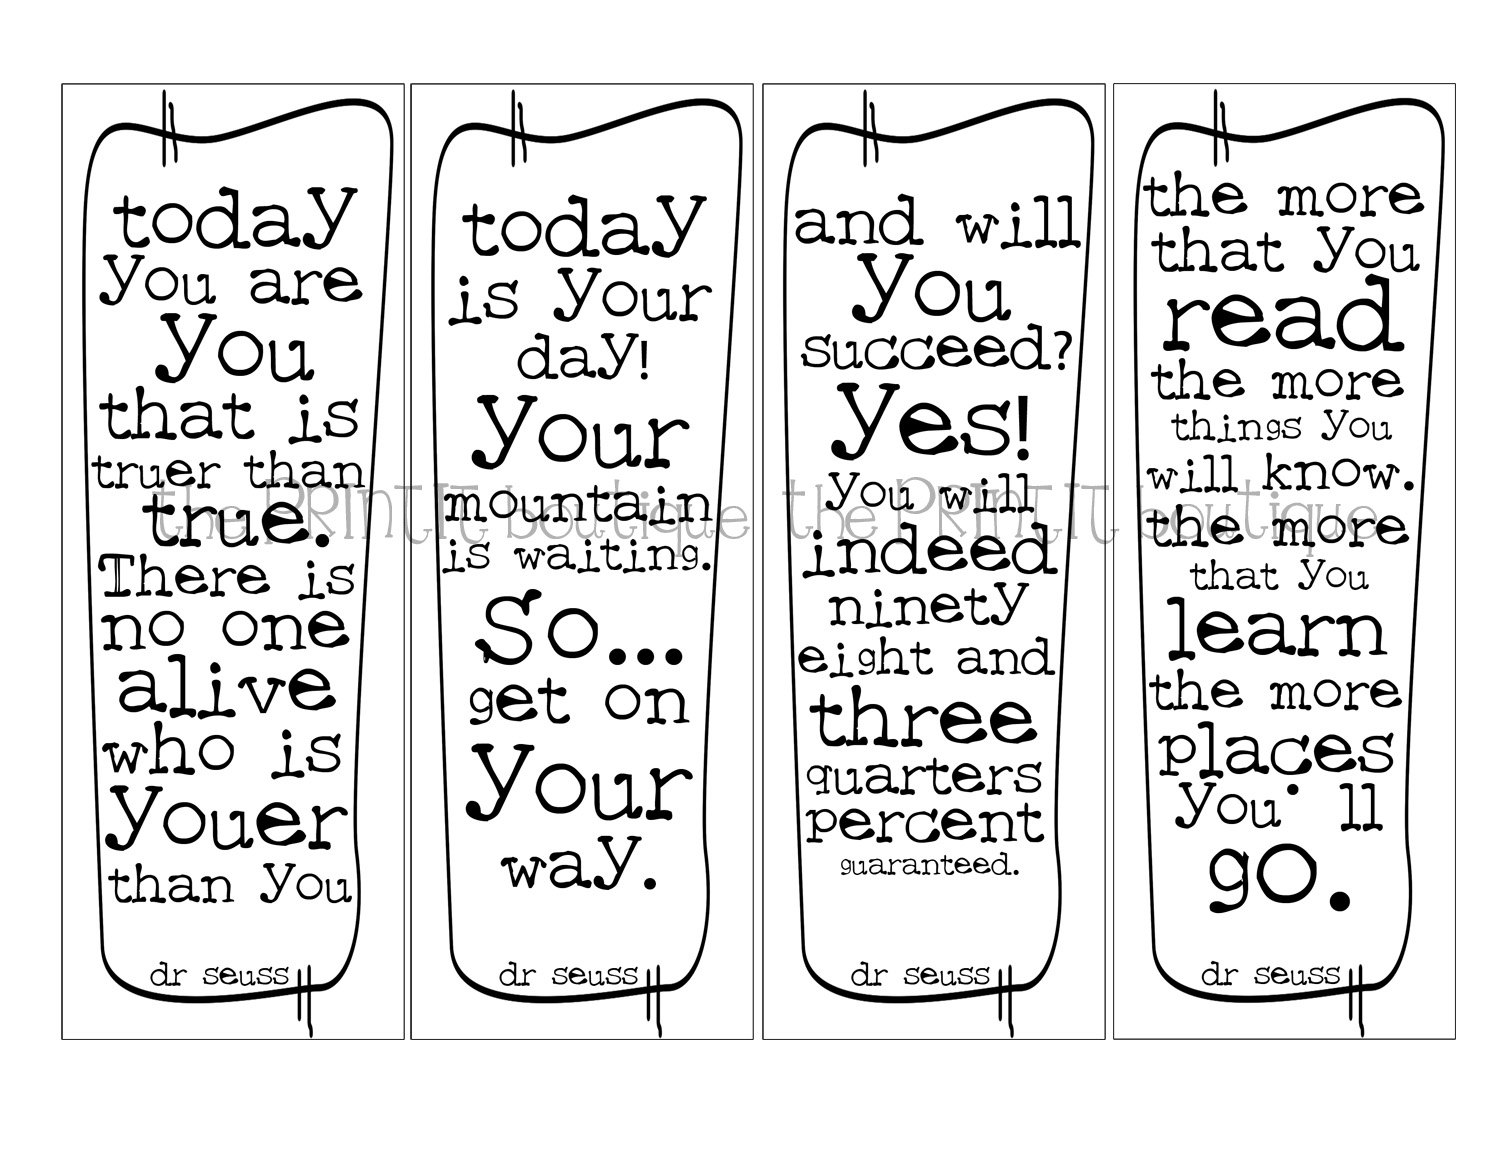 free printable bookmarks templates - 8 best images of free inspirational printable bookmarks